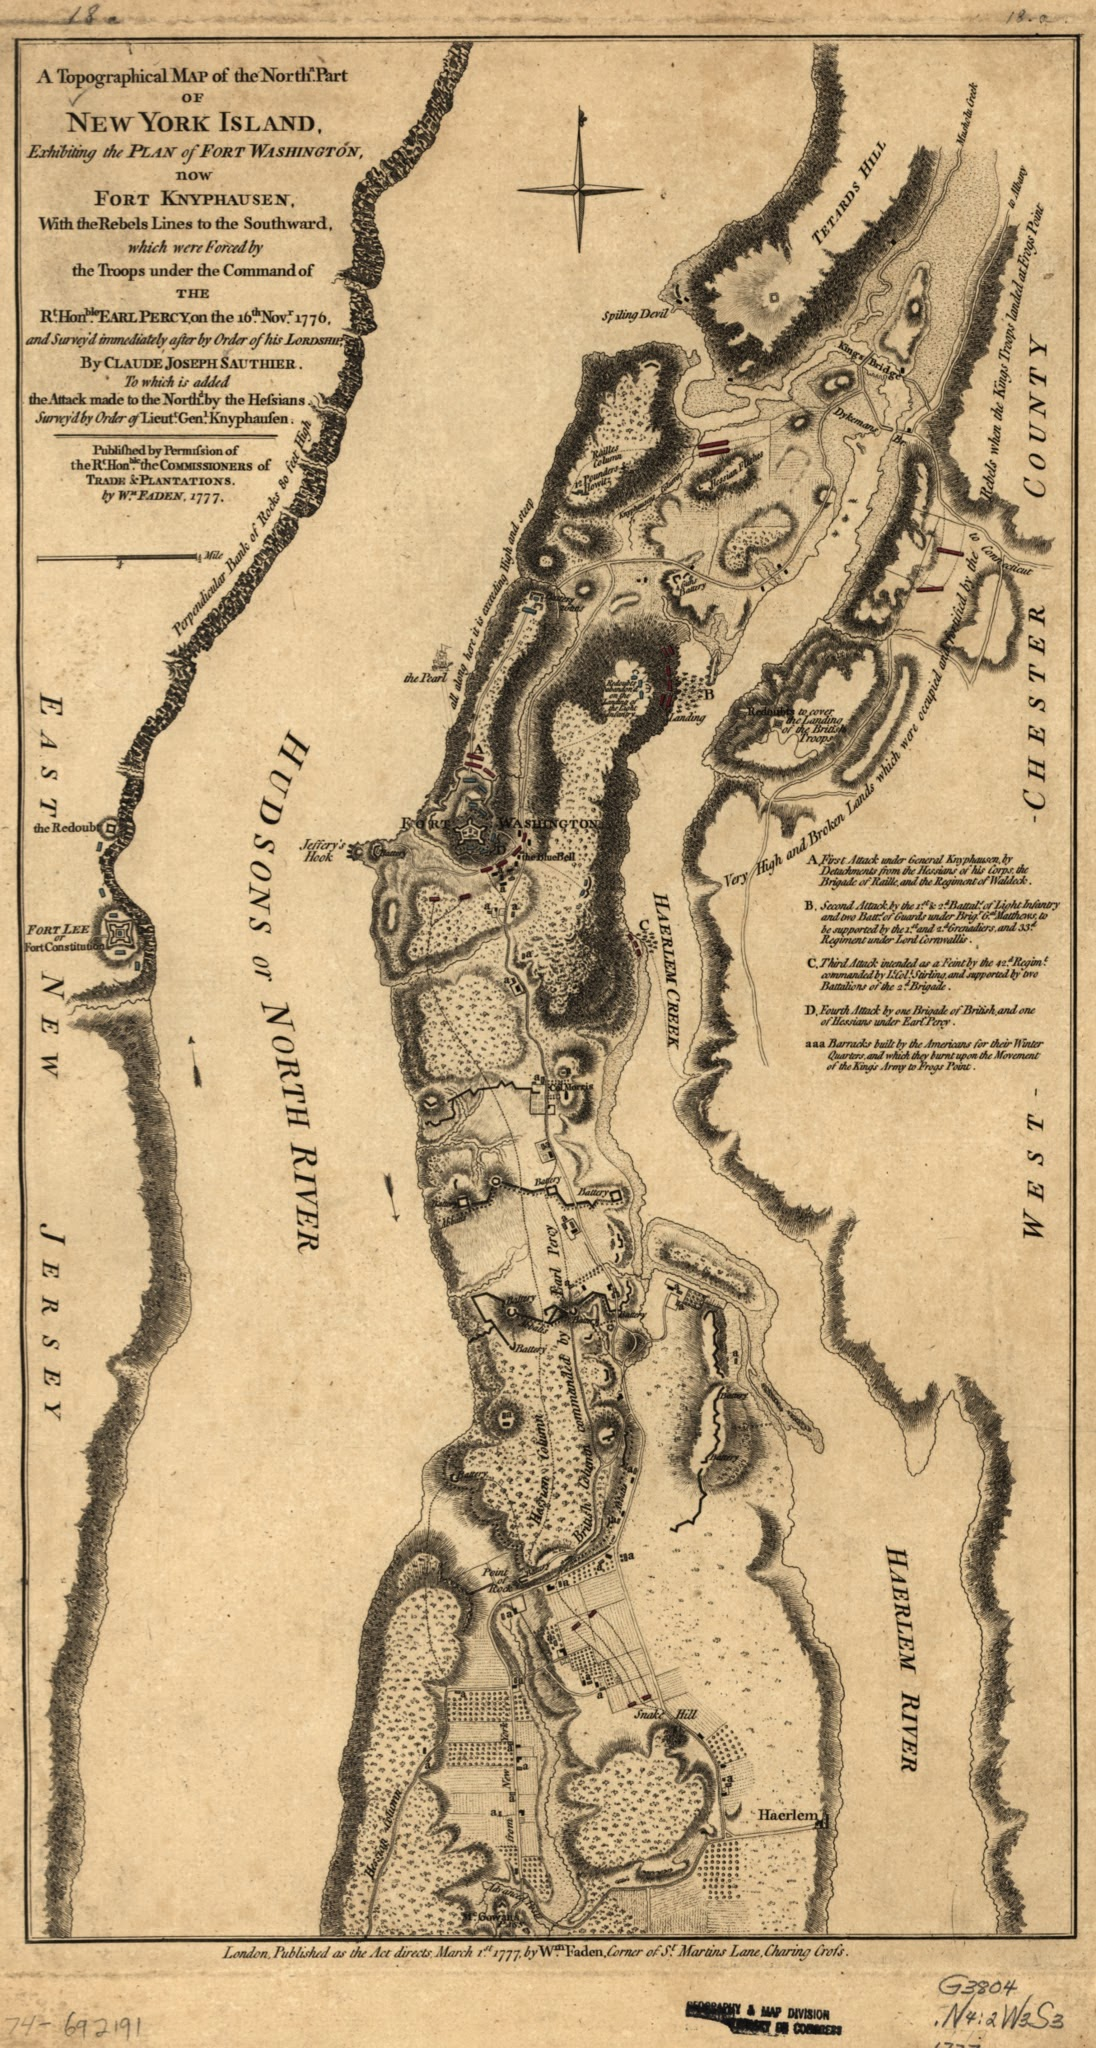 a map of new york island showing a plan of fort washington now call d ft kniphausen with the rebels lines on the south part from which they were driven